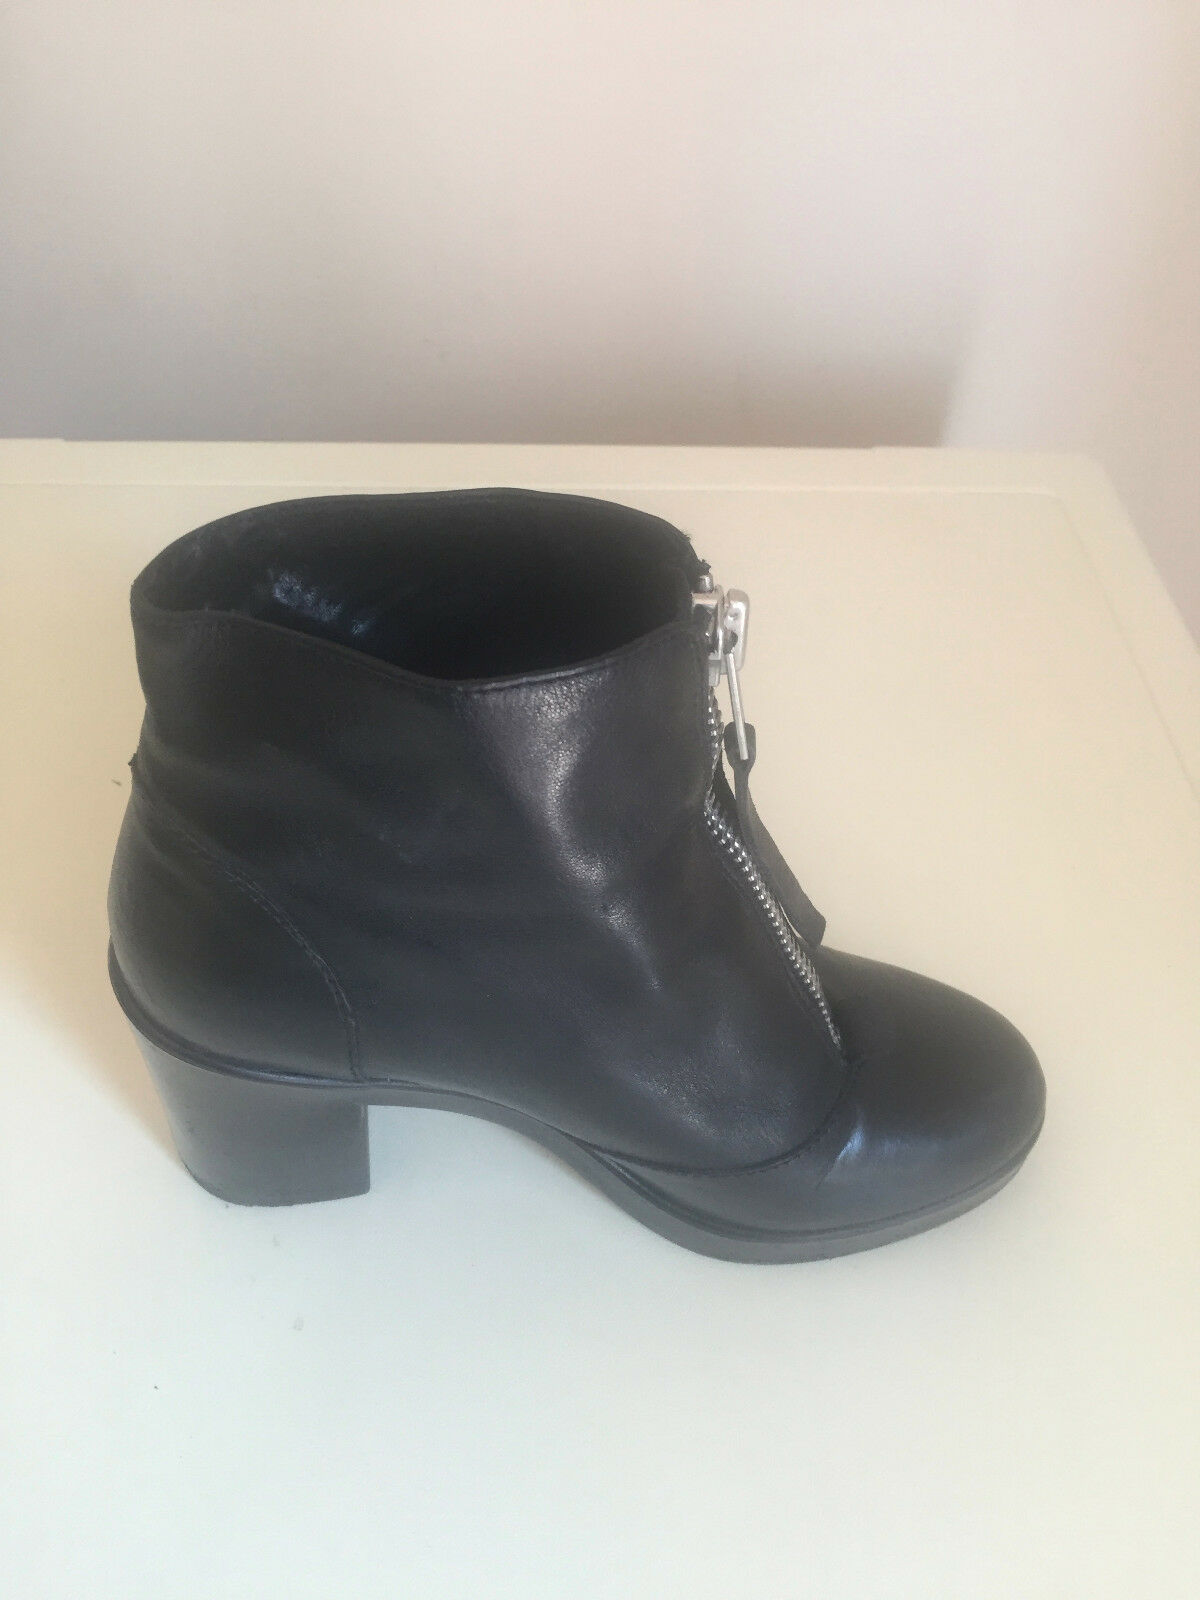 Donna TOPSHOP BLACK  ANKLE 36 LEATHER BOOTS SIZE UK 36 ANKLE 7b521f